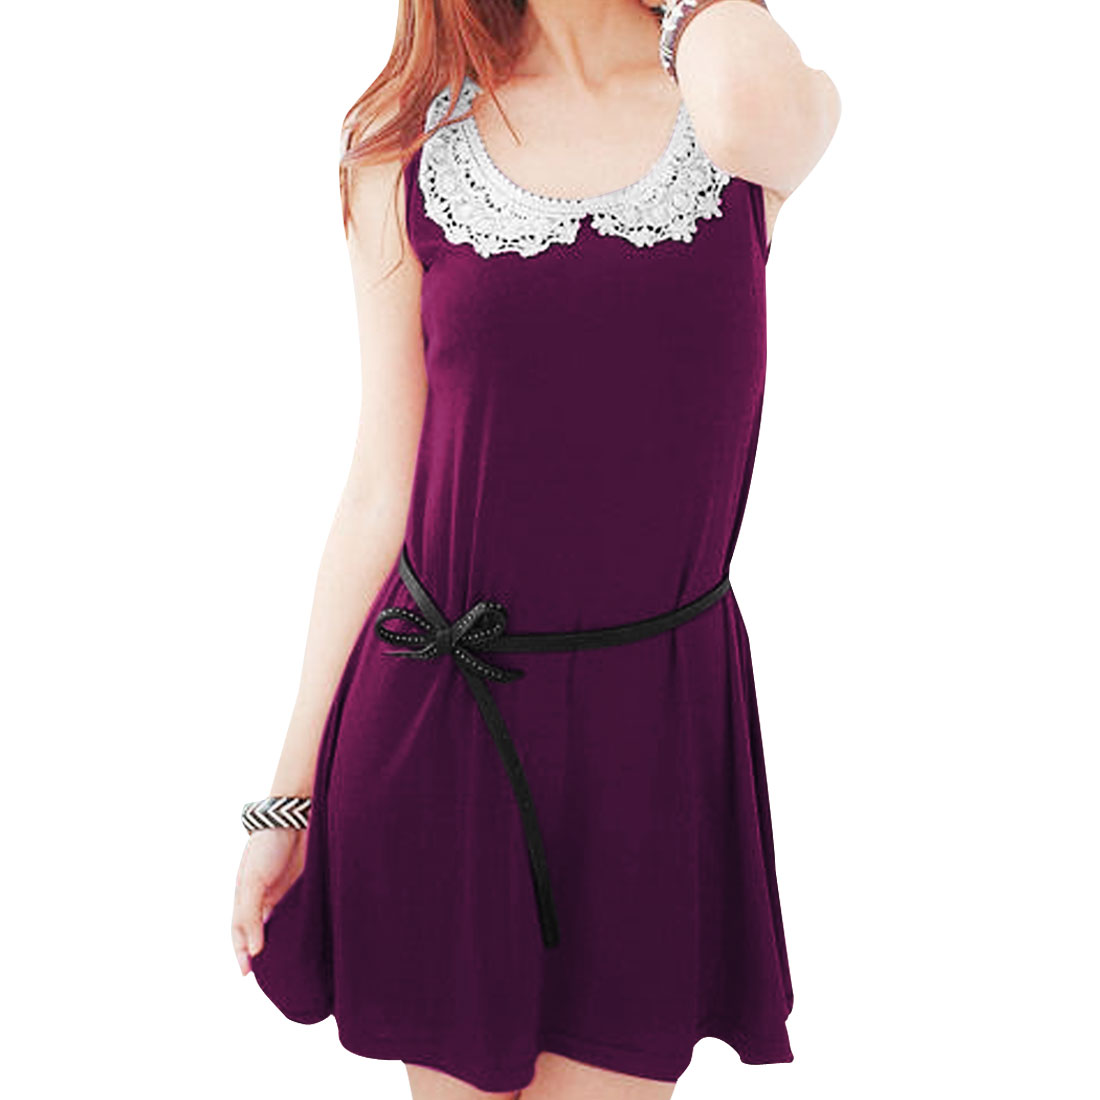 Ladies Round Neck Sleeveless Crochet Decor Dress Wine Color XS